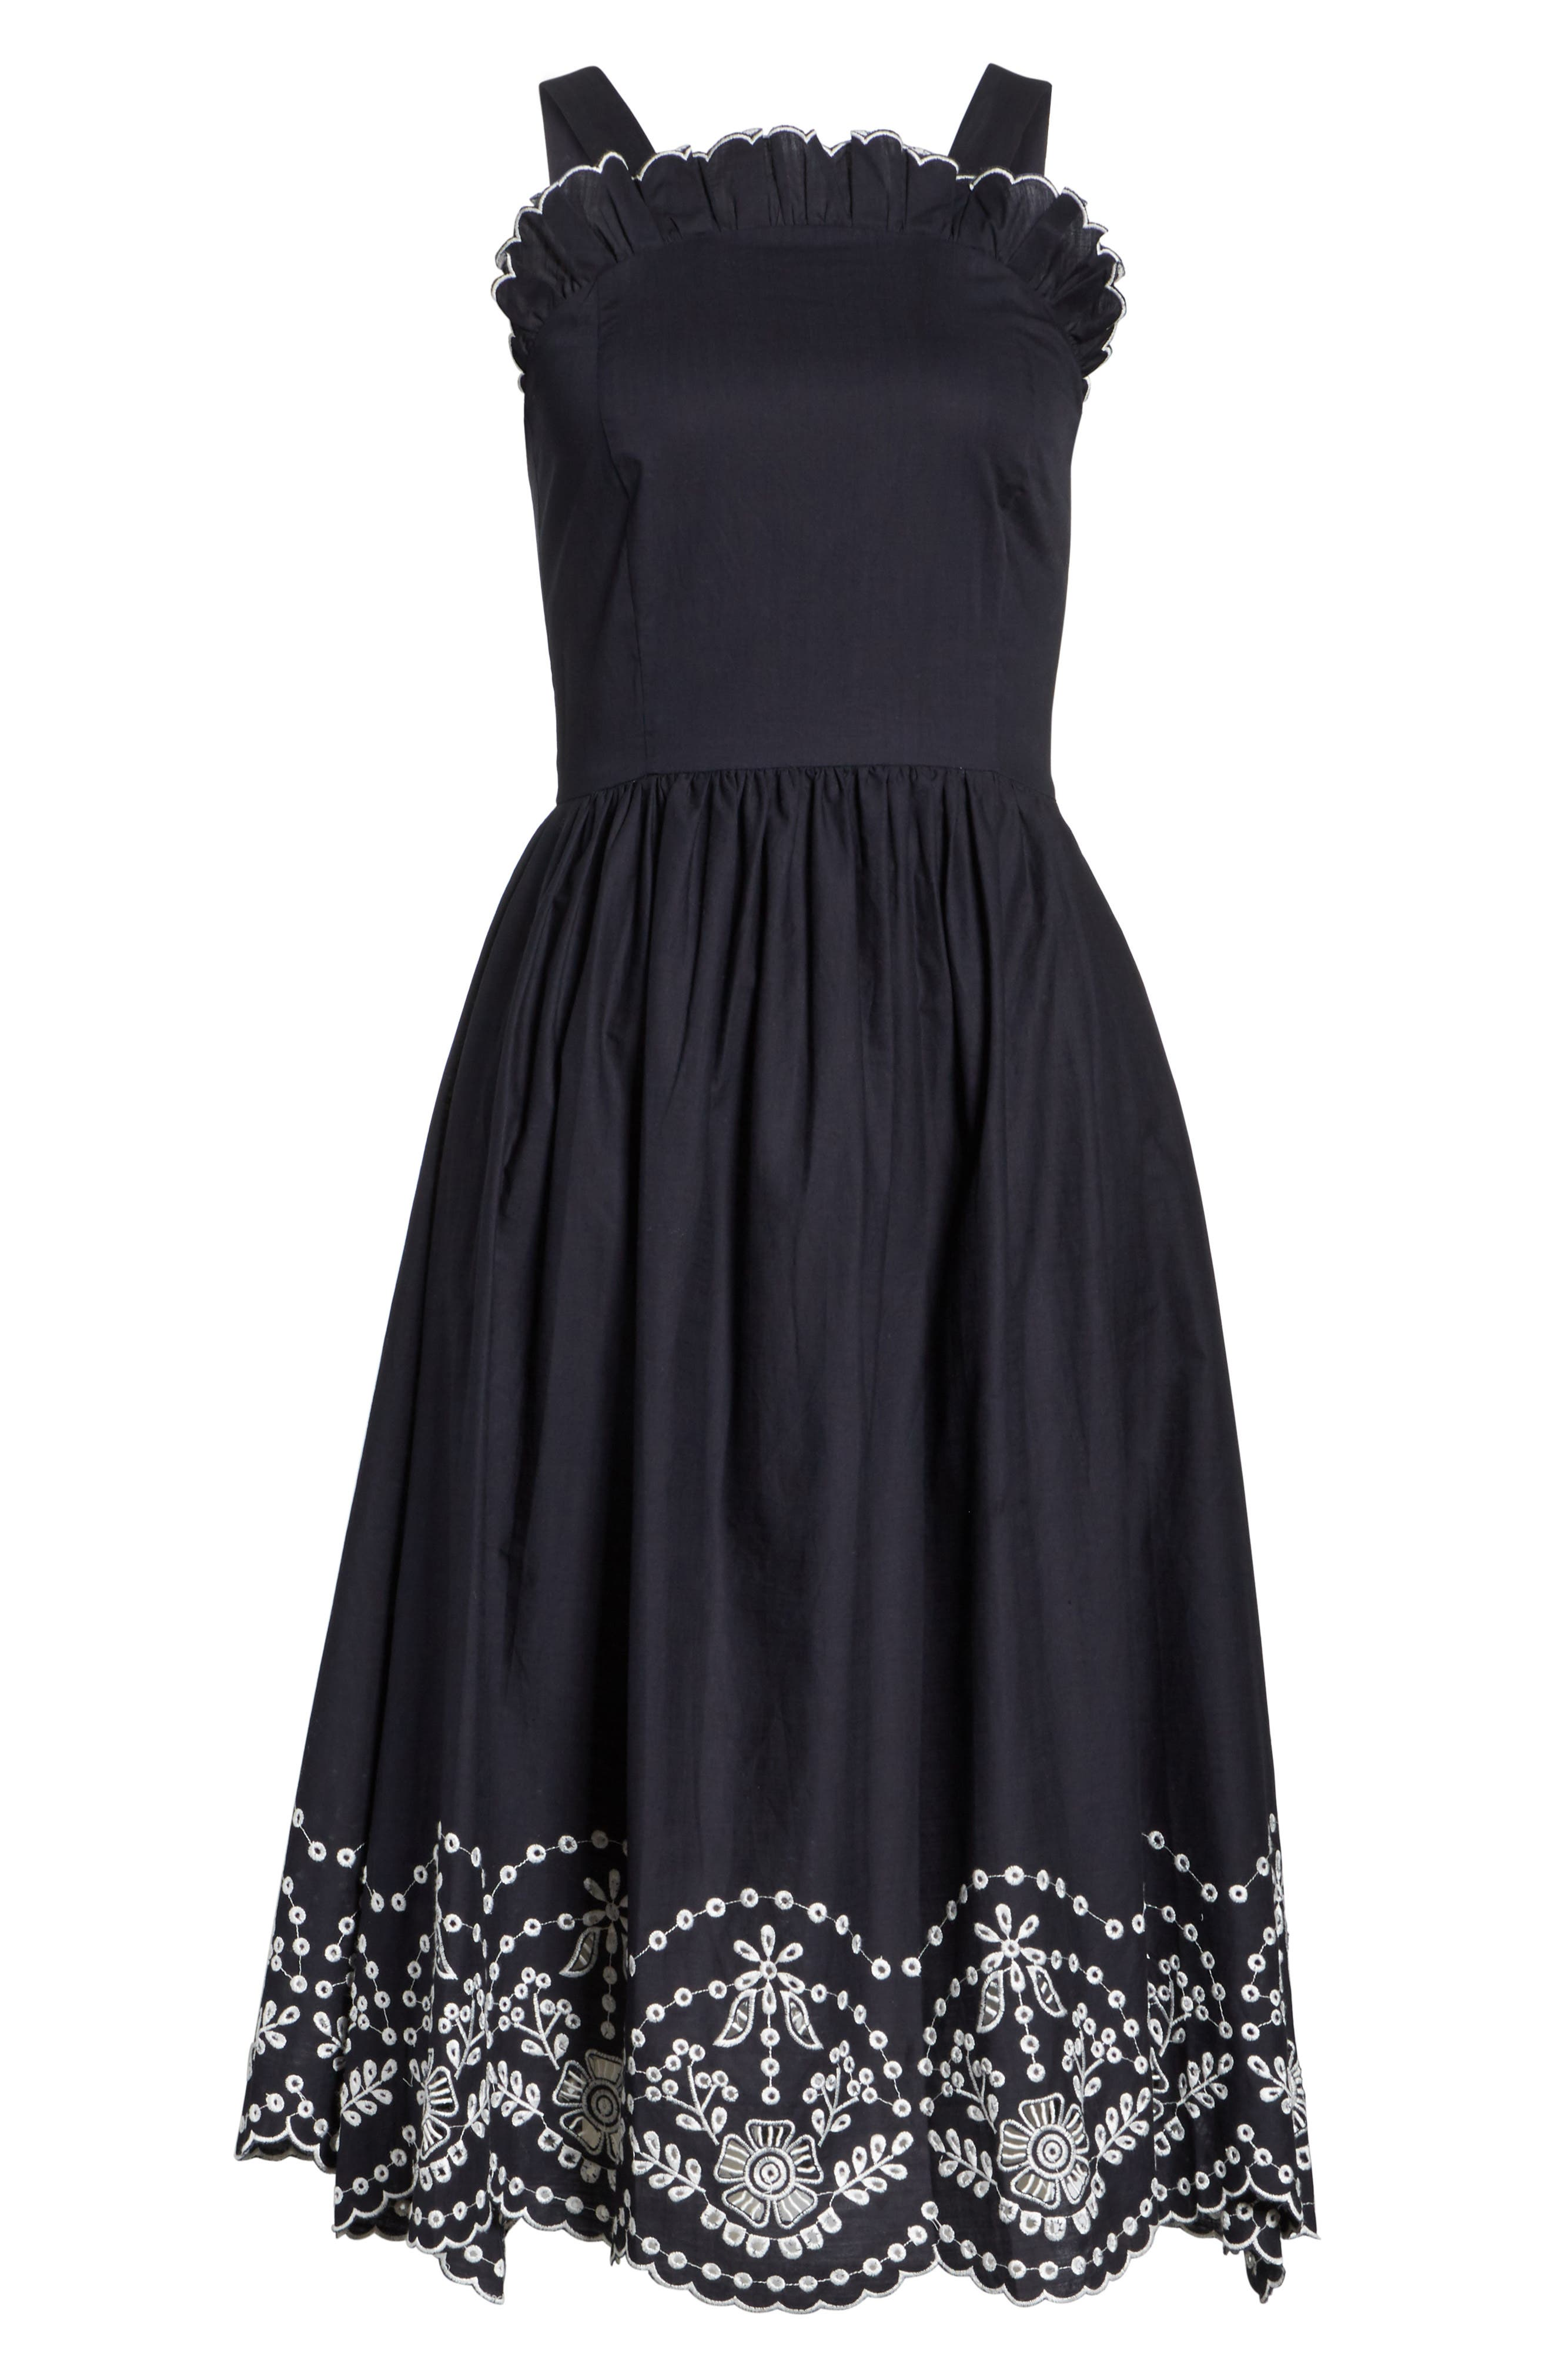 Alouette Eyelet Hem Dress,                             Alternate thumbnail 6, color,                             Navy